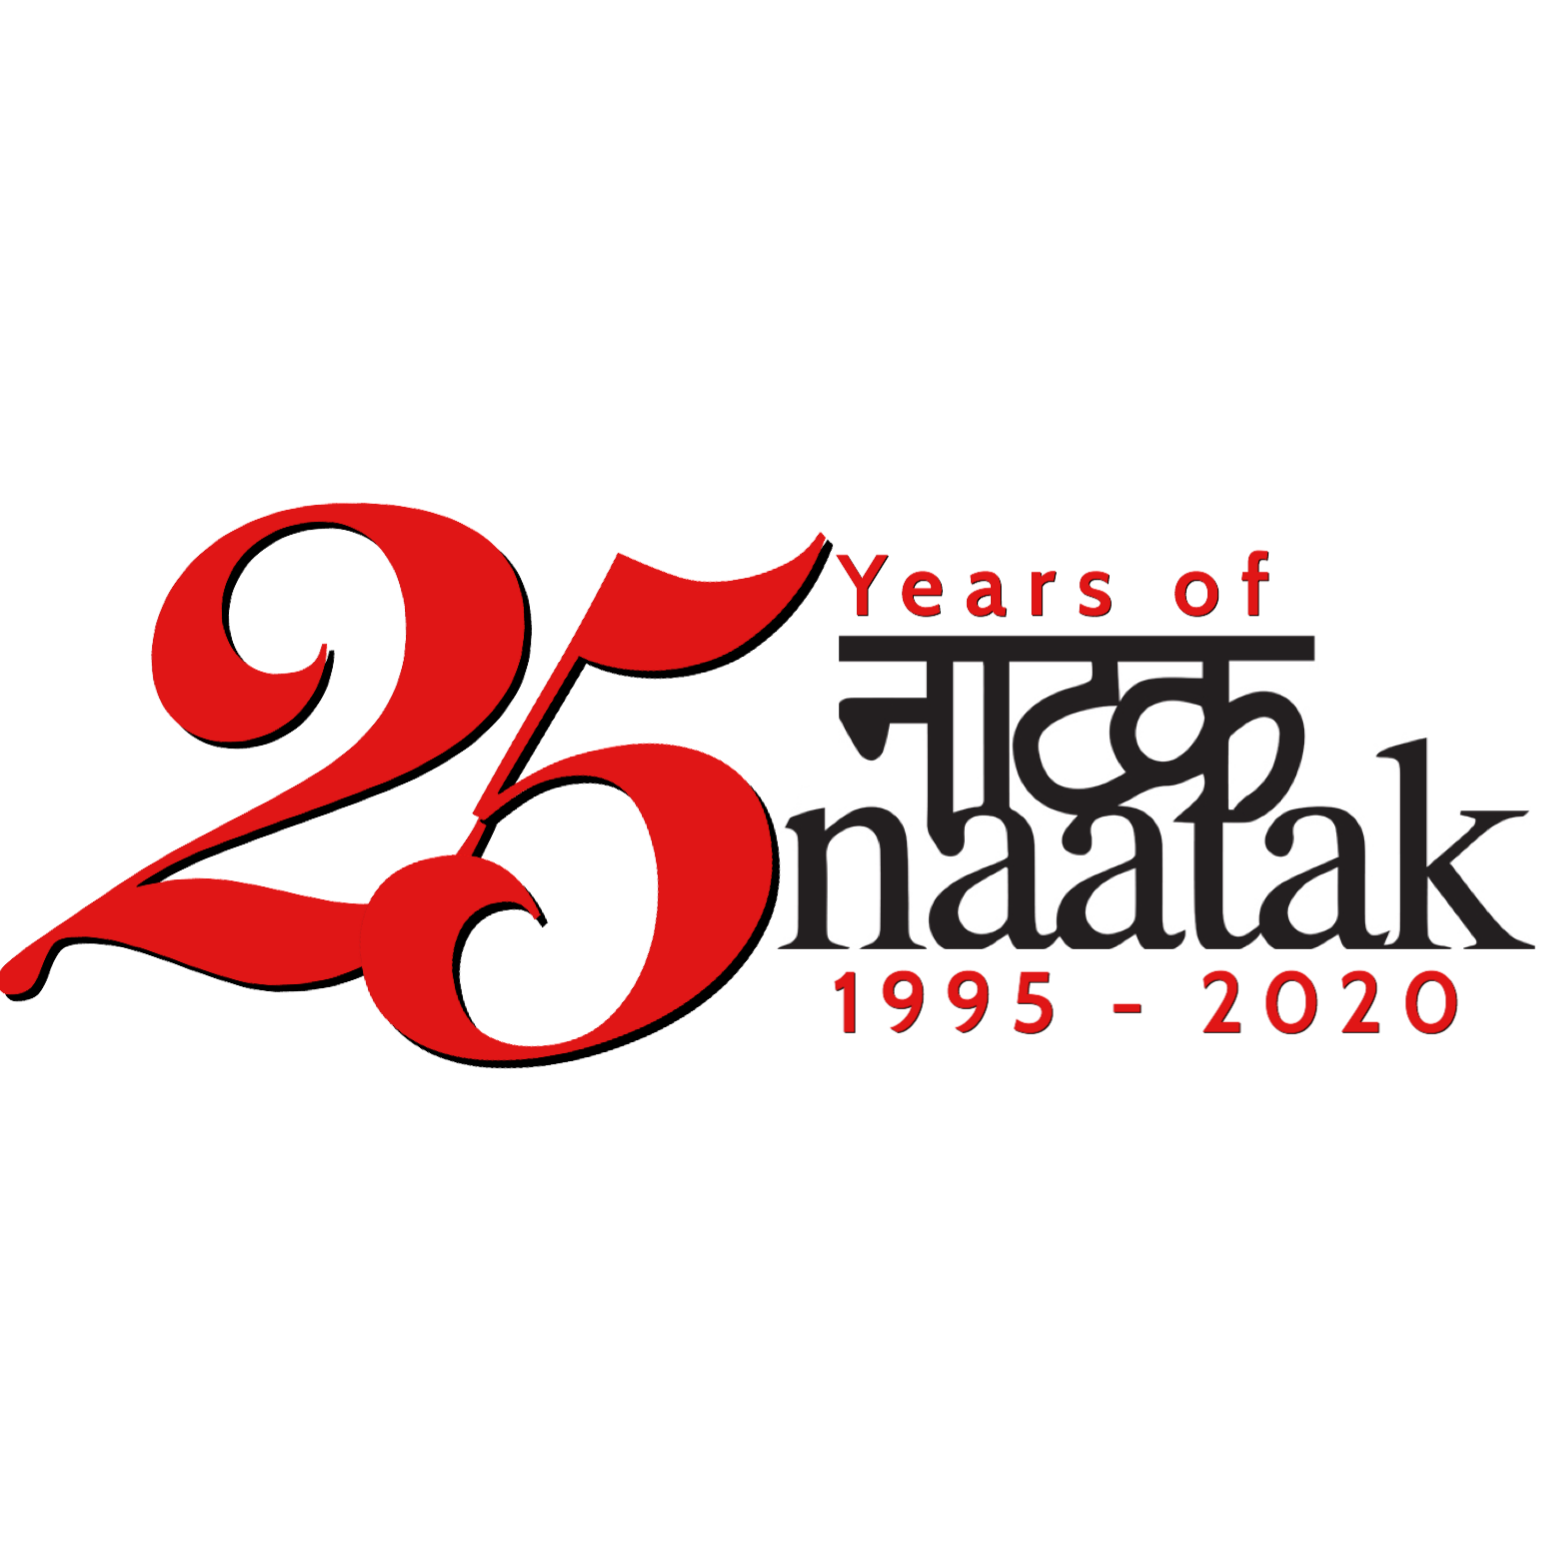 25 years of Naatak